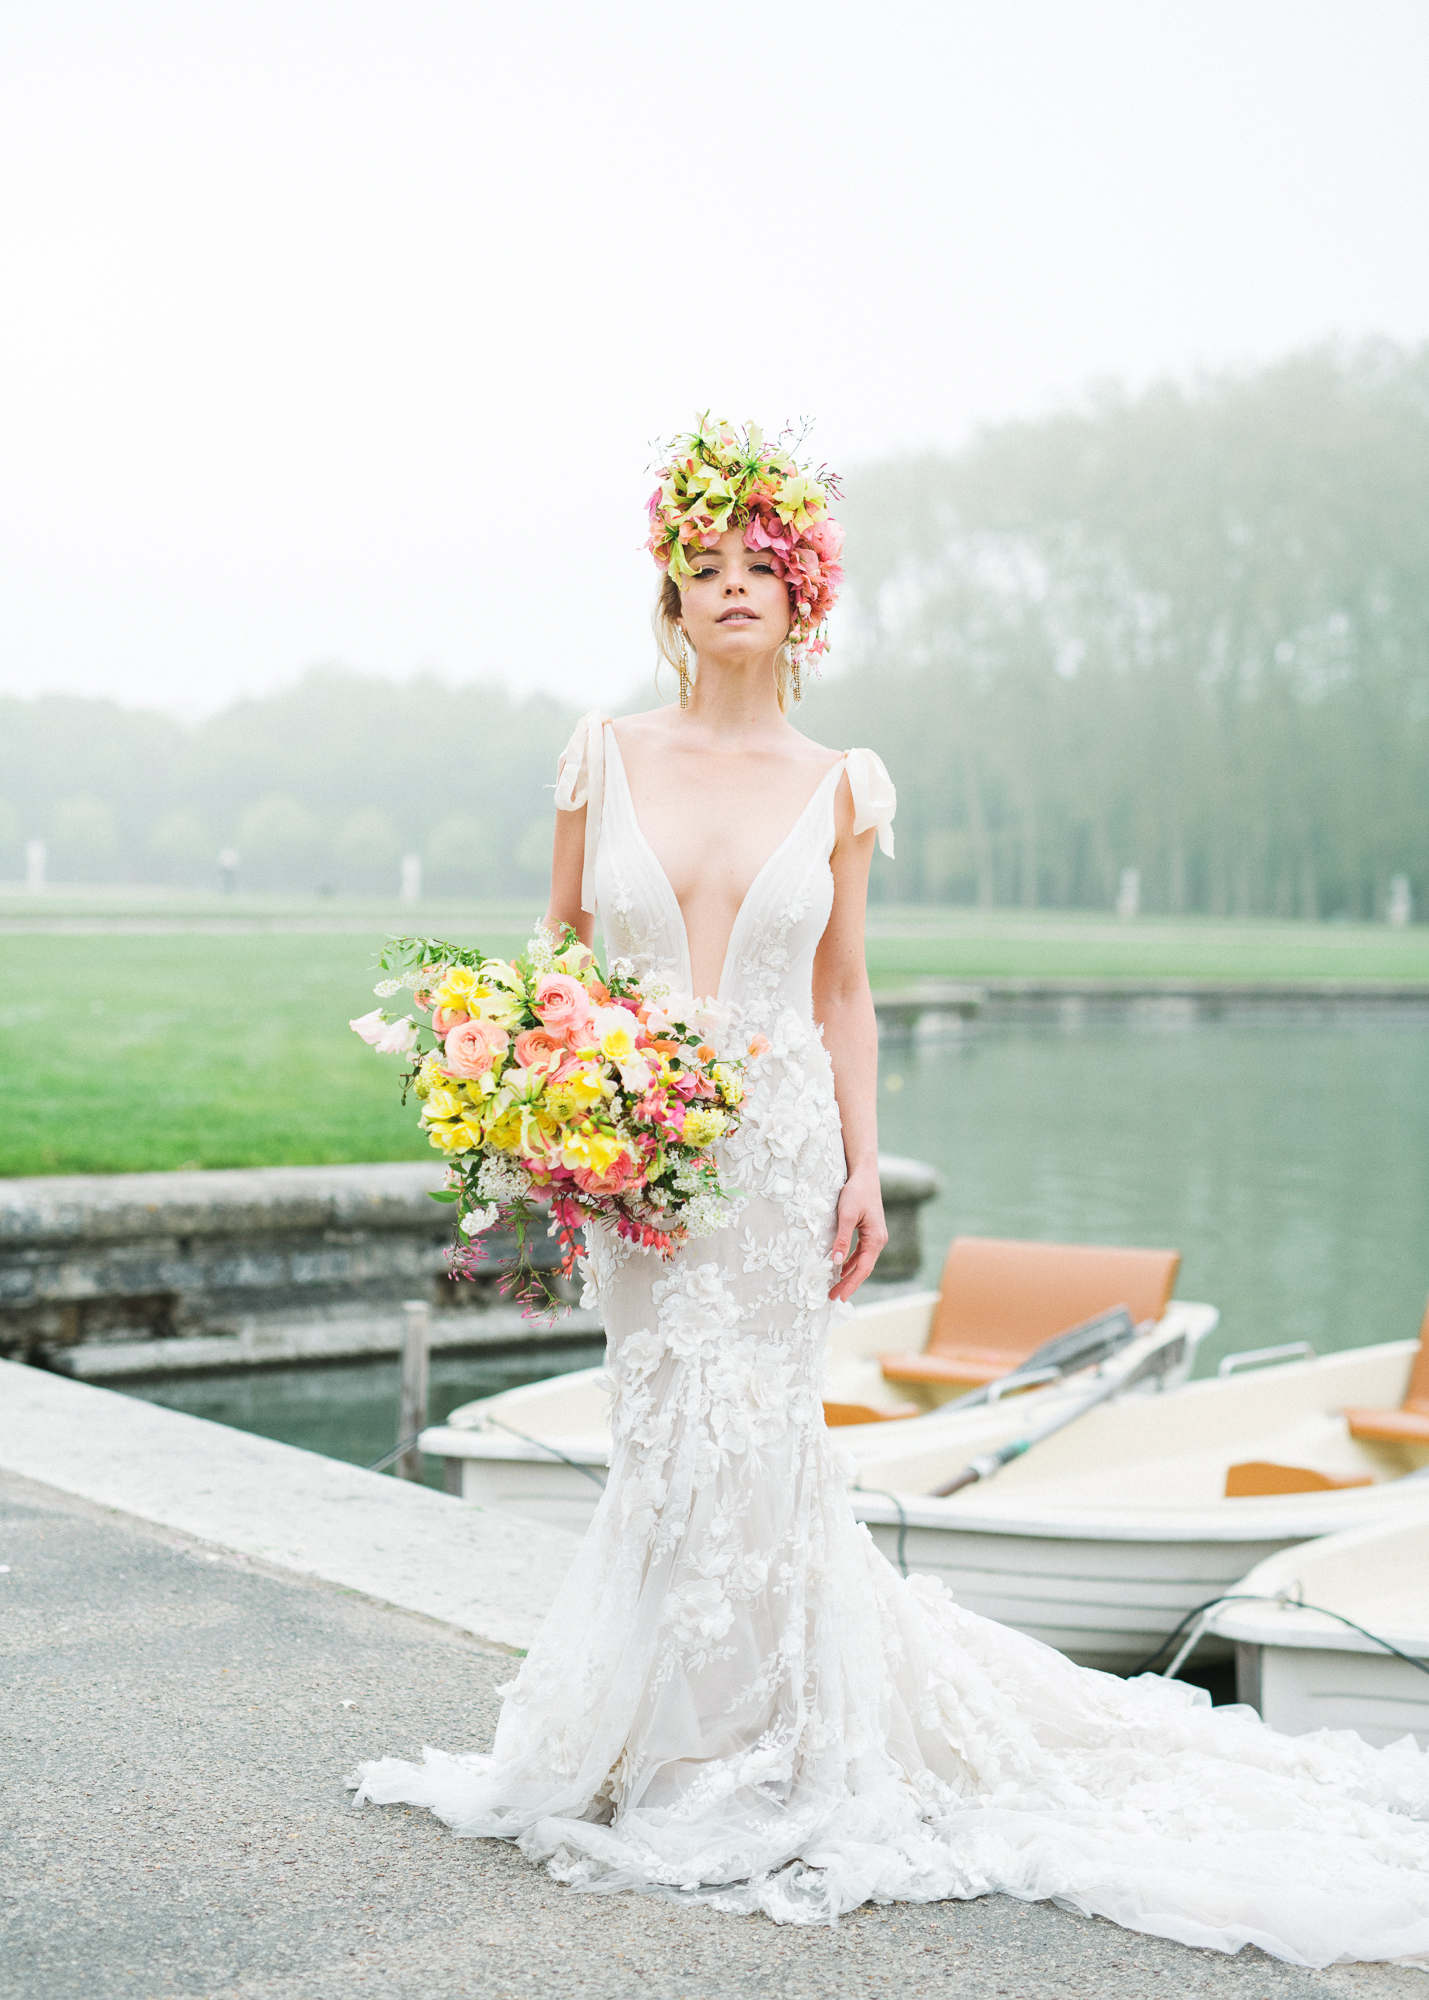 travellur_photoshoot__summer_in_versailles_wedding_dress_bridal_luxe_shoot_boating_boat_isibeal_studio.jpg